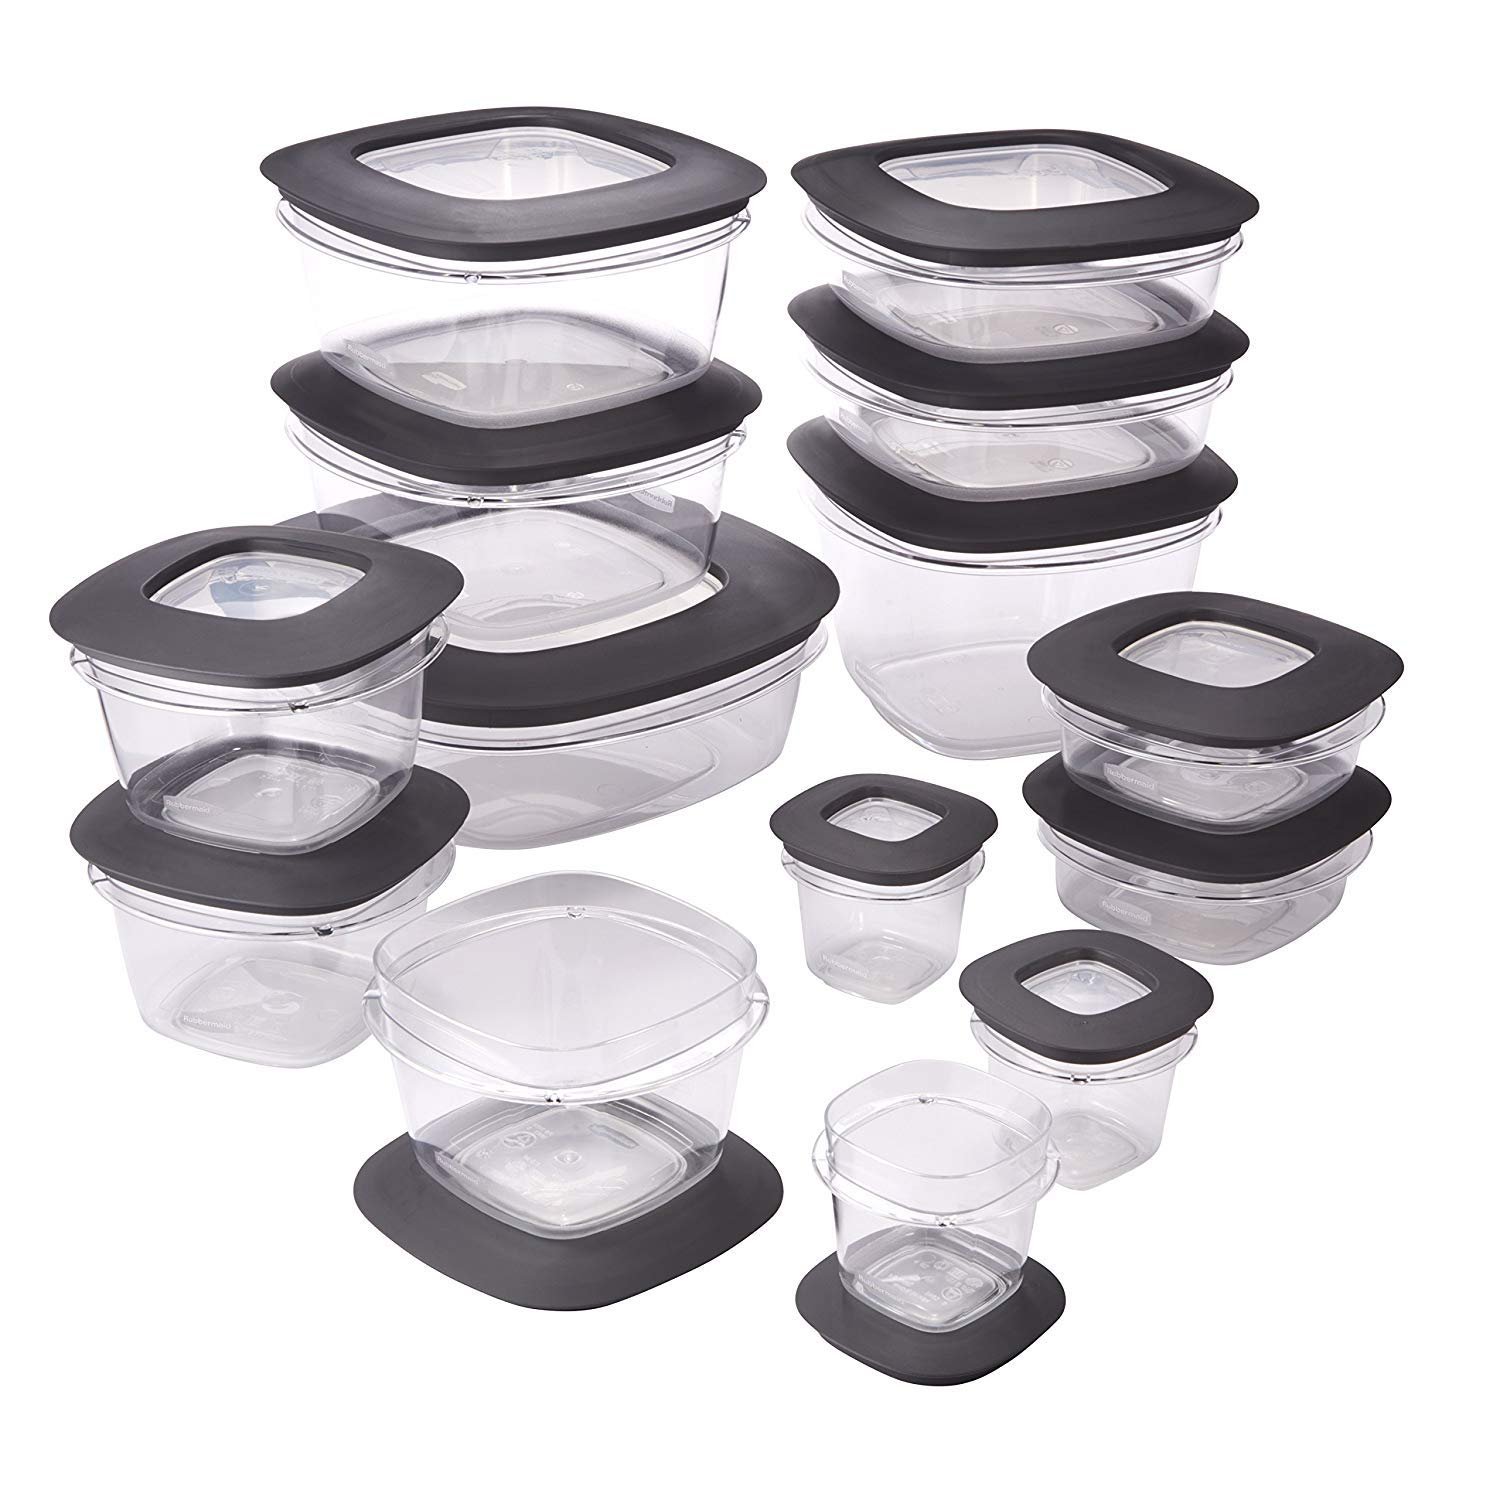 Rubbermaid 1951294 Premier Meal Prep Food Storage Containers, 28-Piece, Gray